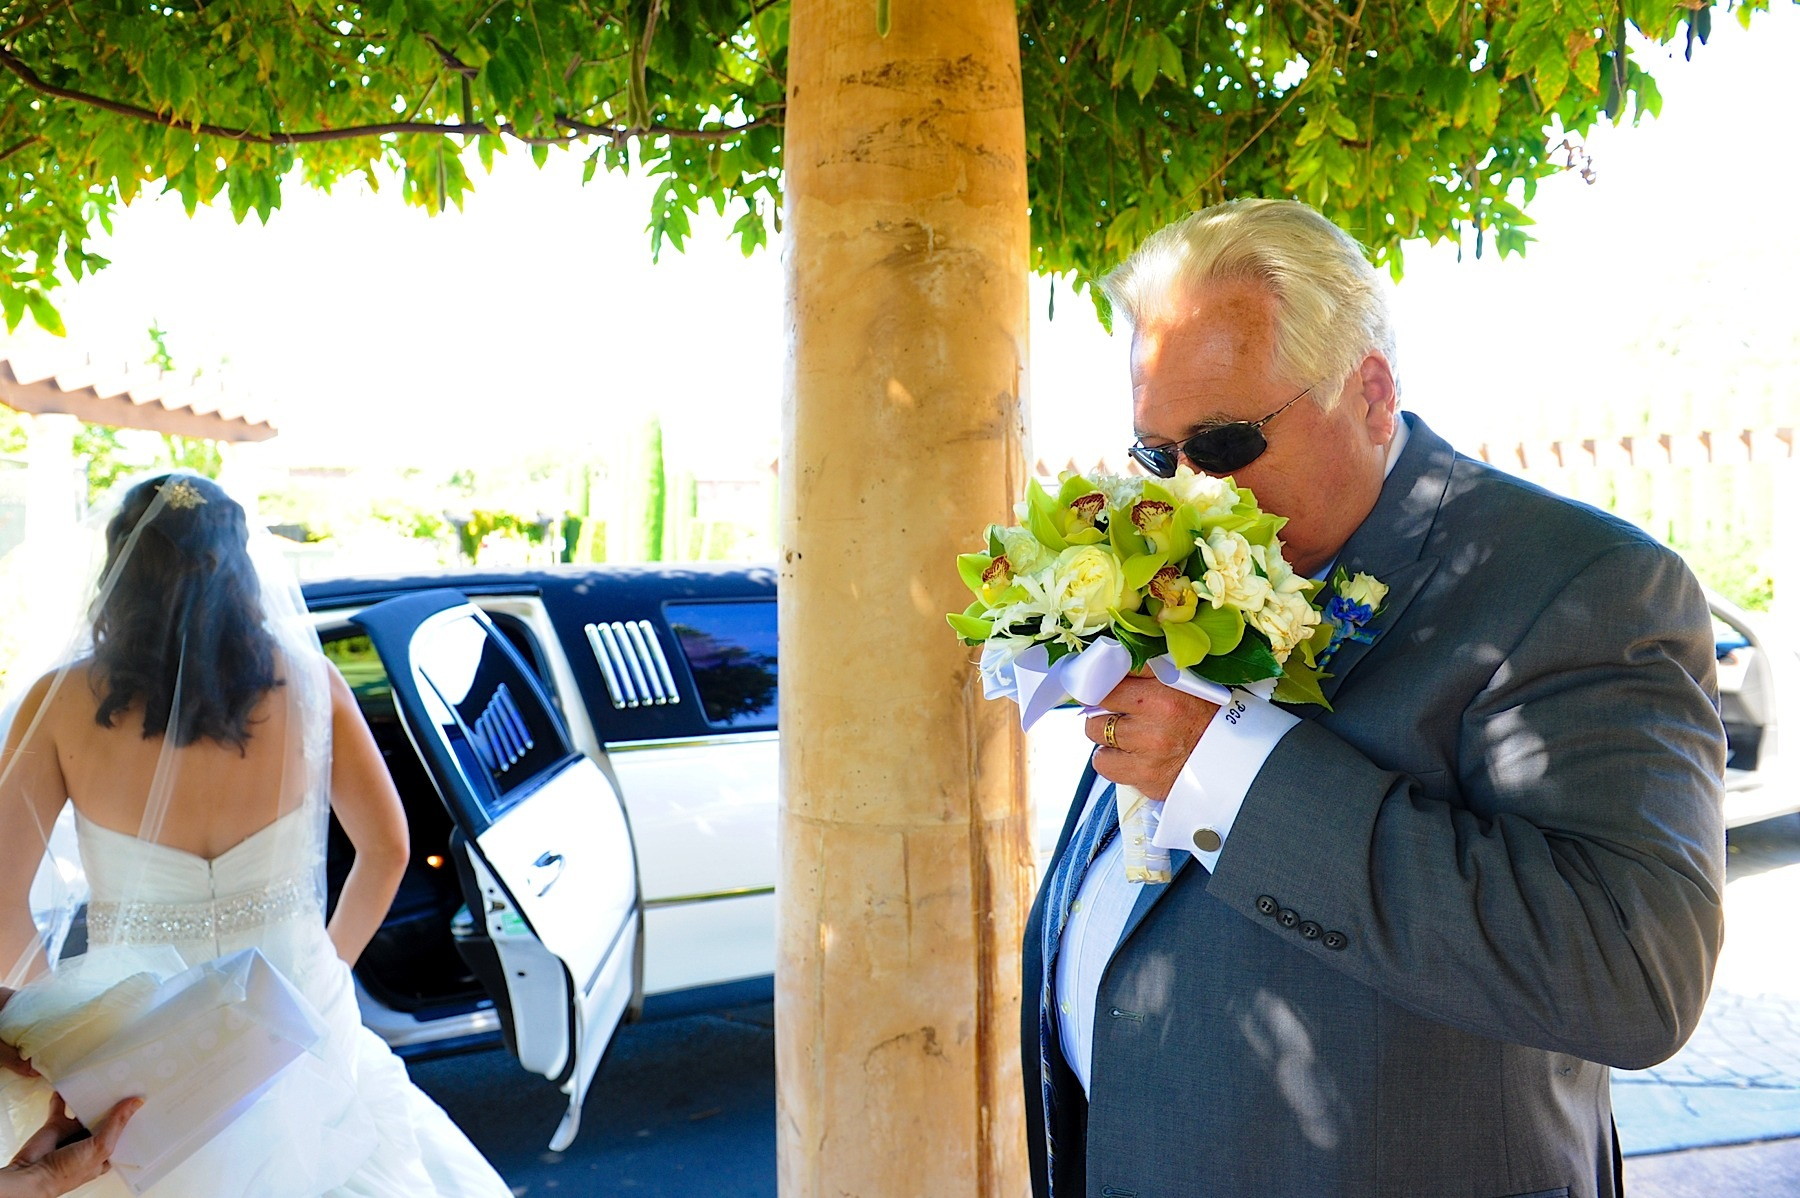 The Vintage Estates / Villagio Inn & Spa Wedding Photographer specialzing in Wine Country Destination and Elopement Wedding Photography